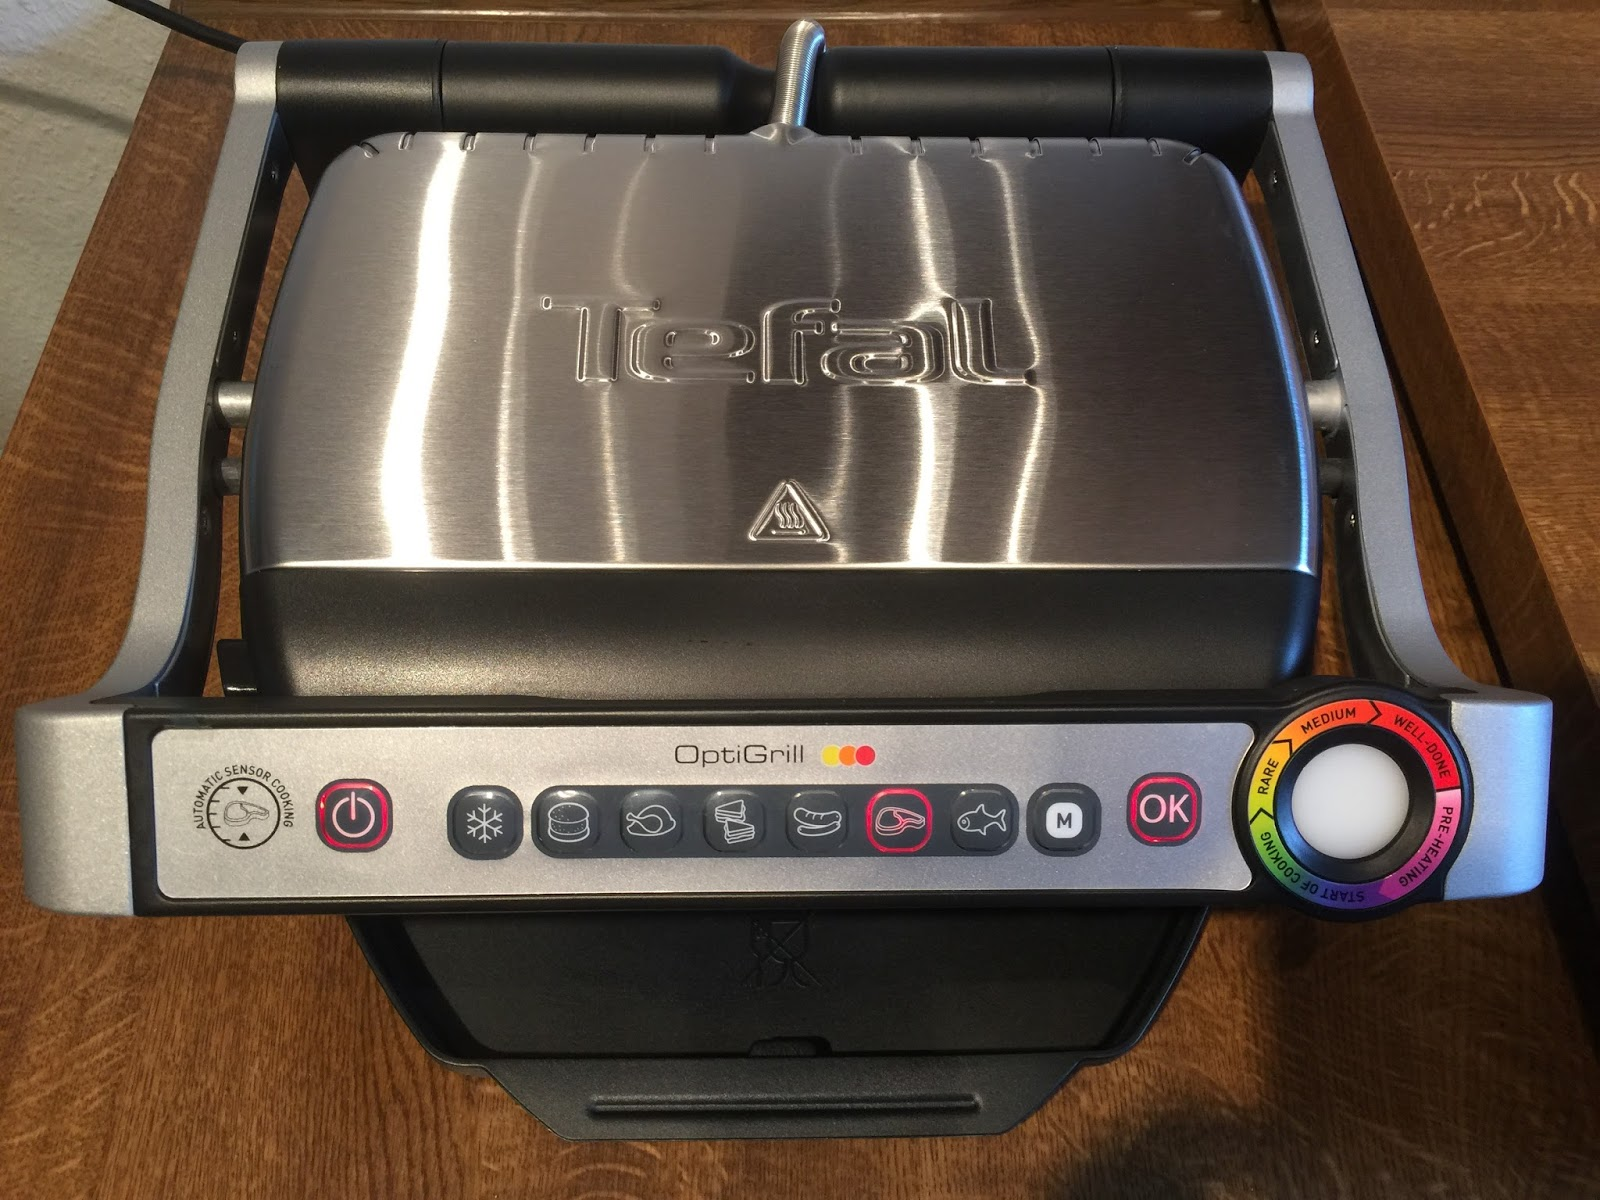 Tefal Optigrill Martina Ziehl Mit Pampered Chef